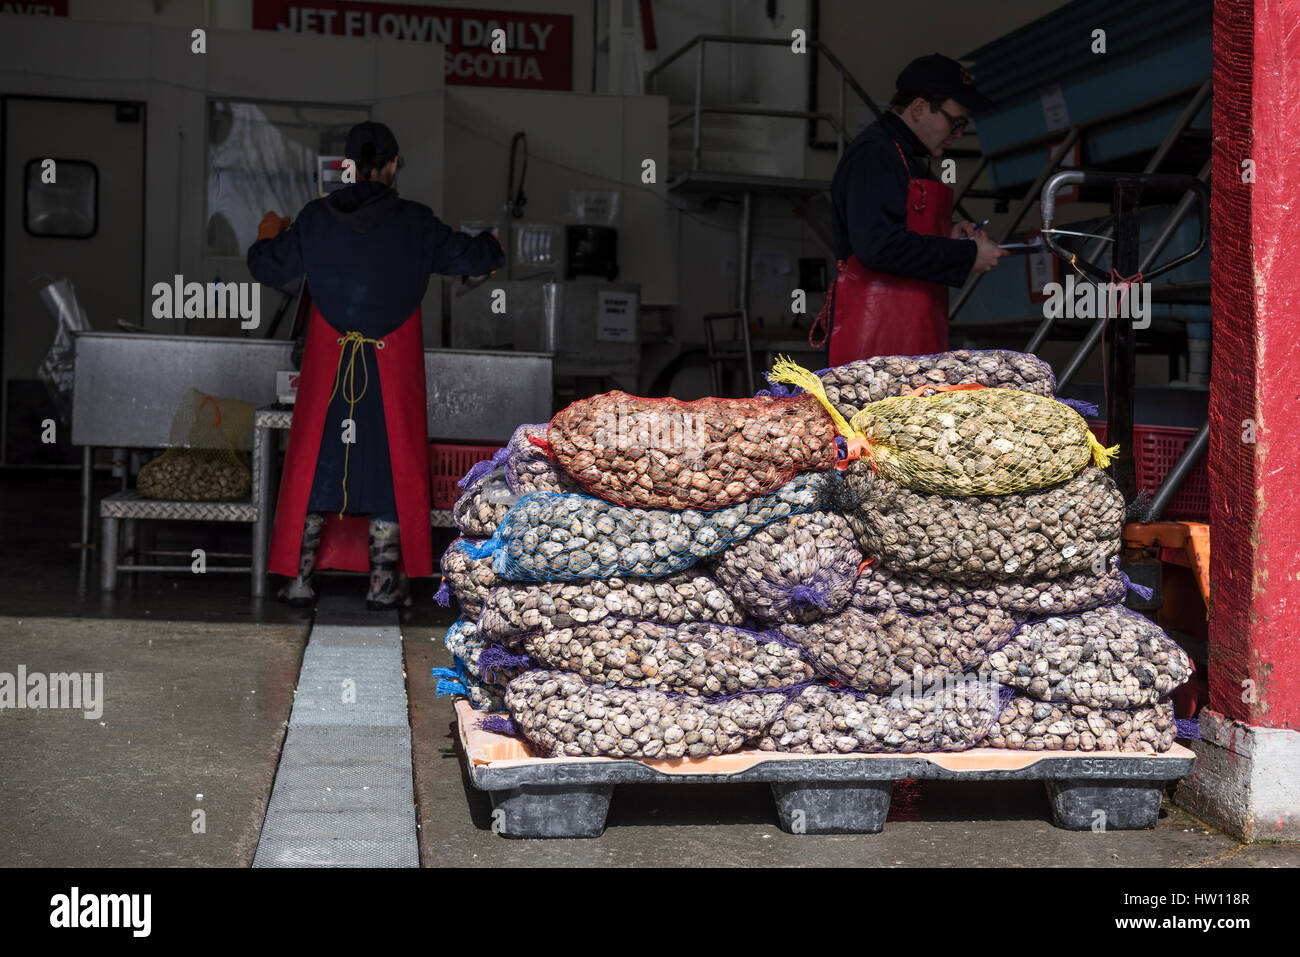 Clams in netted sacks sitting on a pallet, at a seafood outlet, on Granville Island, Vancouver. - Stock Image